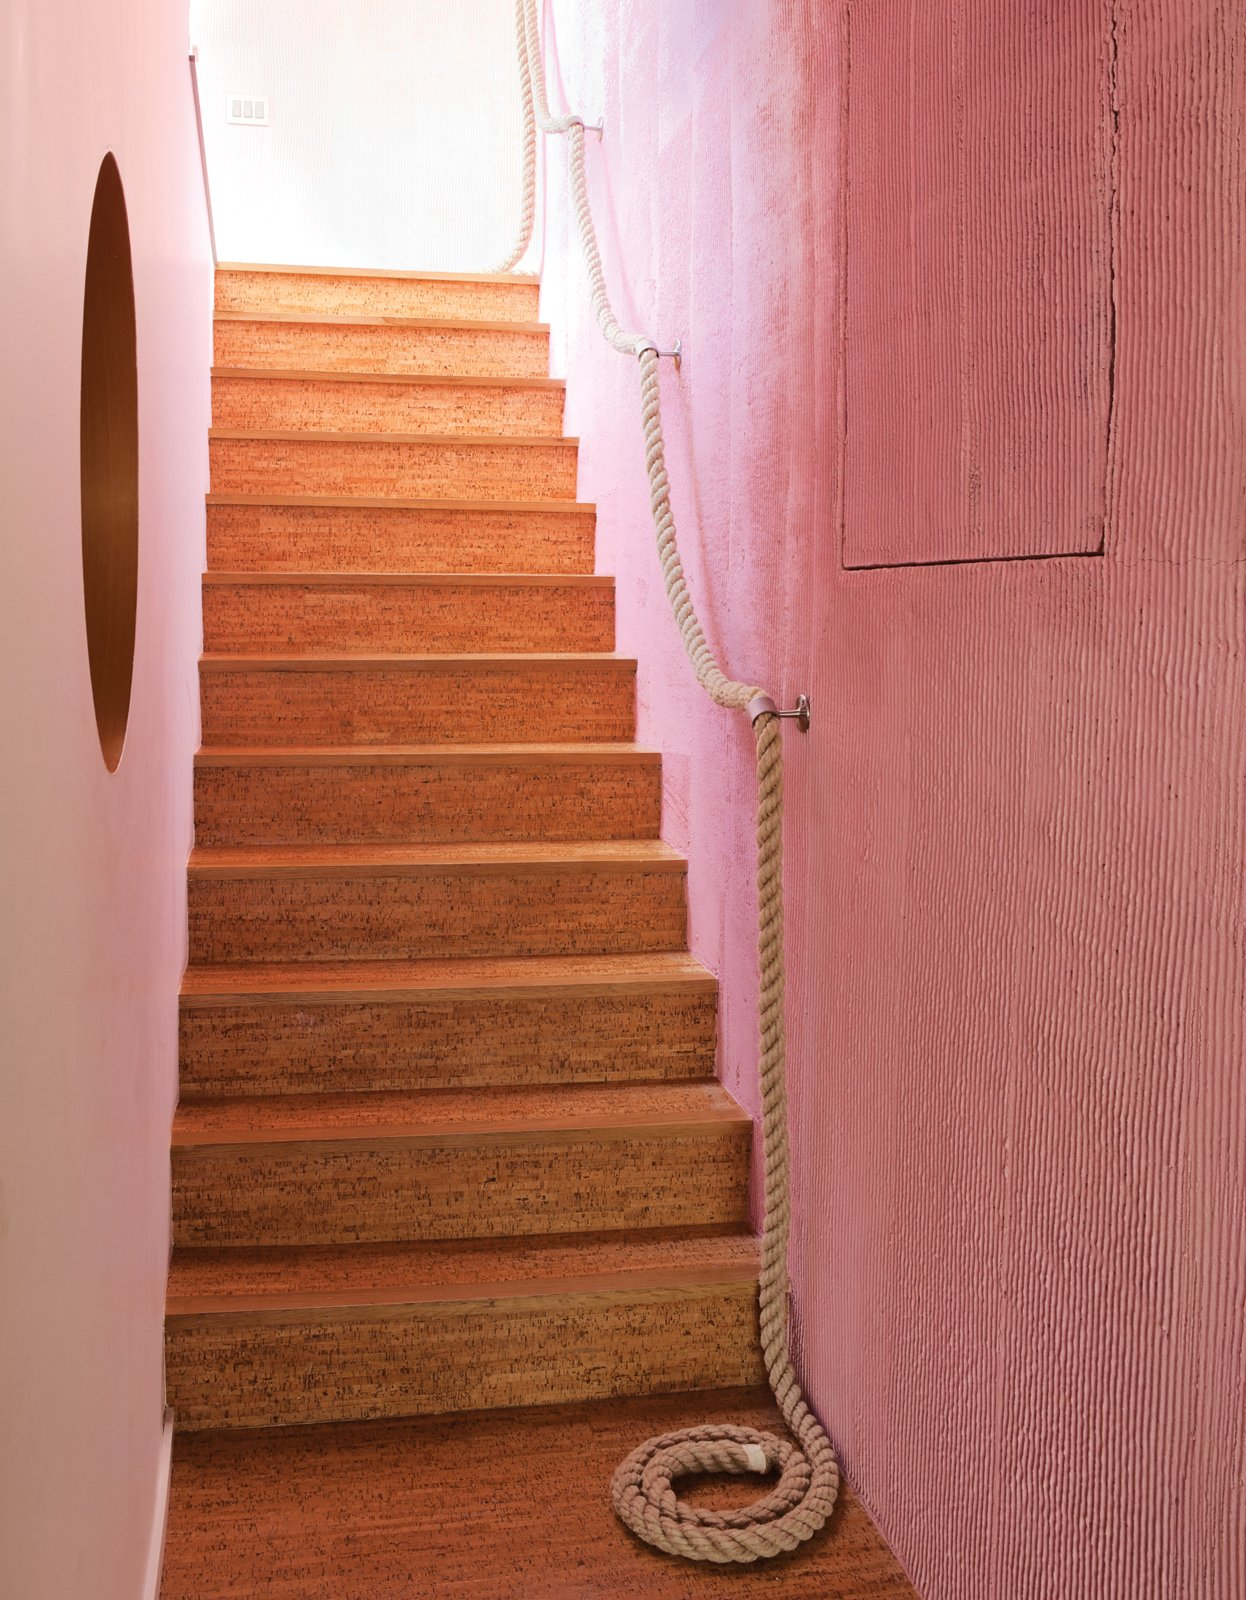 Staircase And Wood Tread The Cork Stairs With A Rope Railing Lead Down To  The Kids